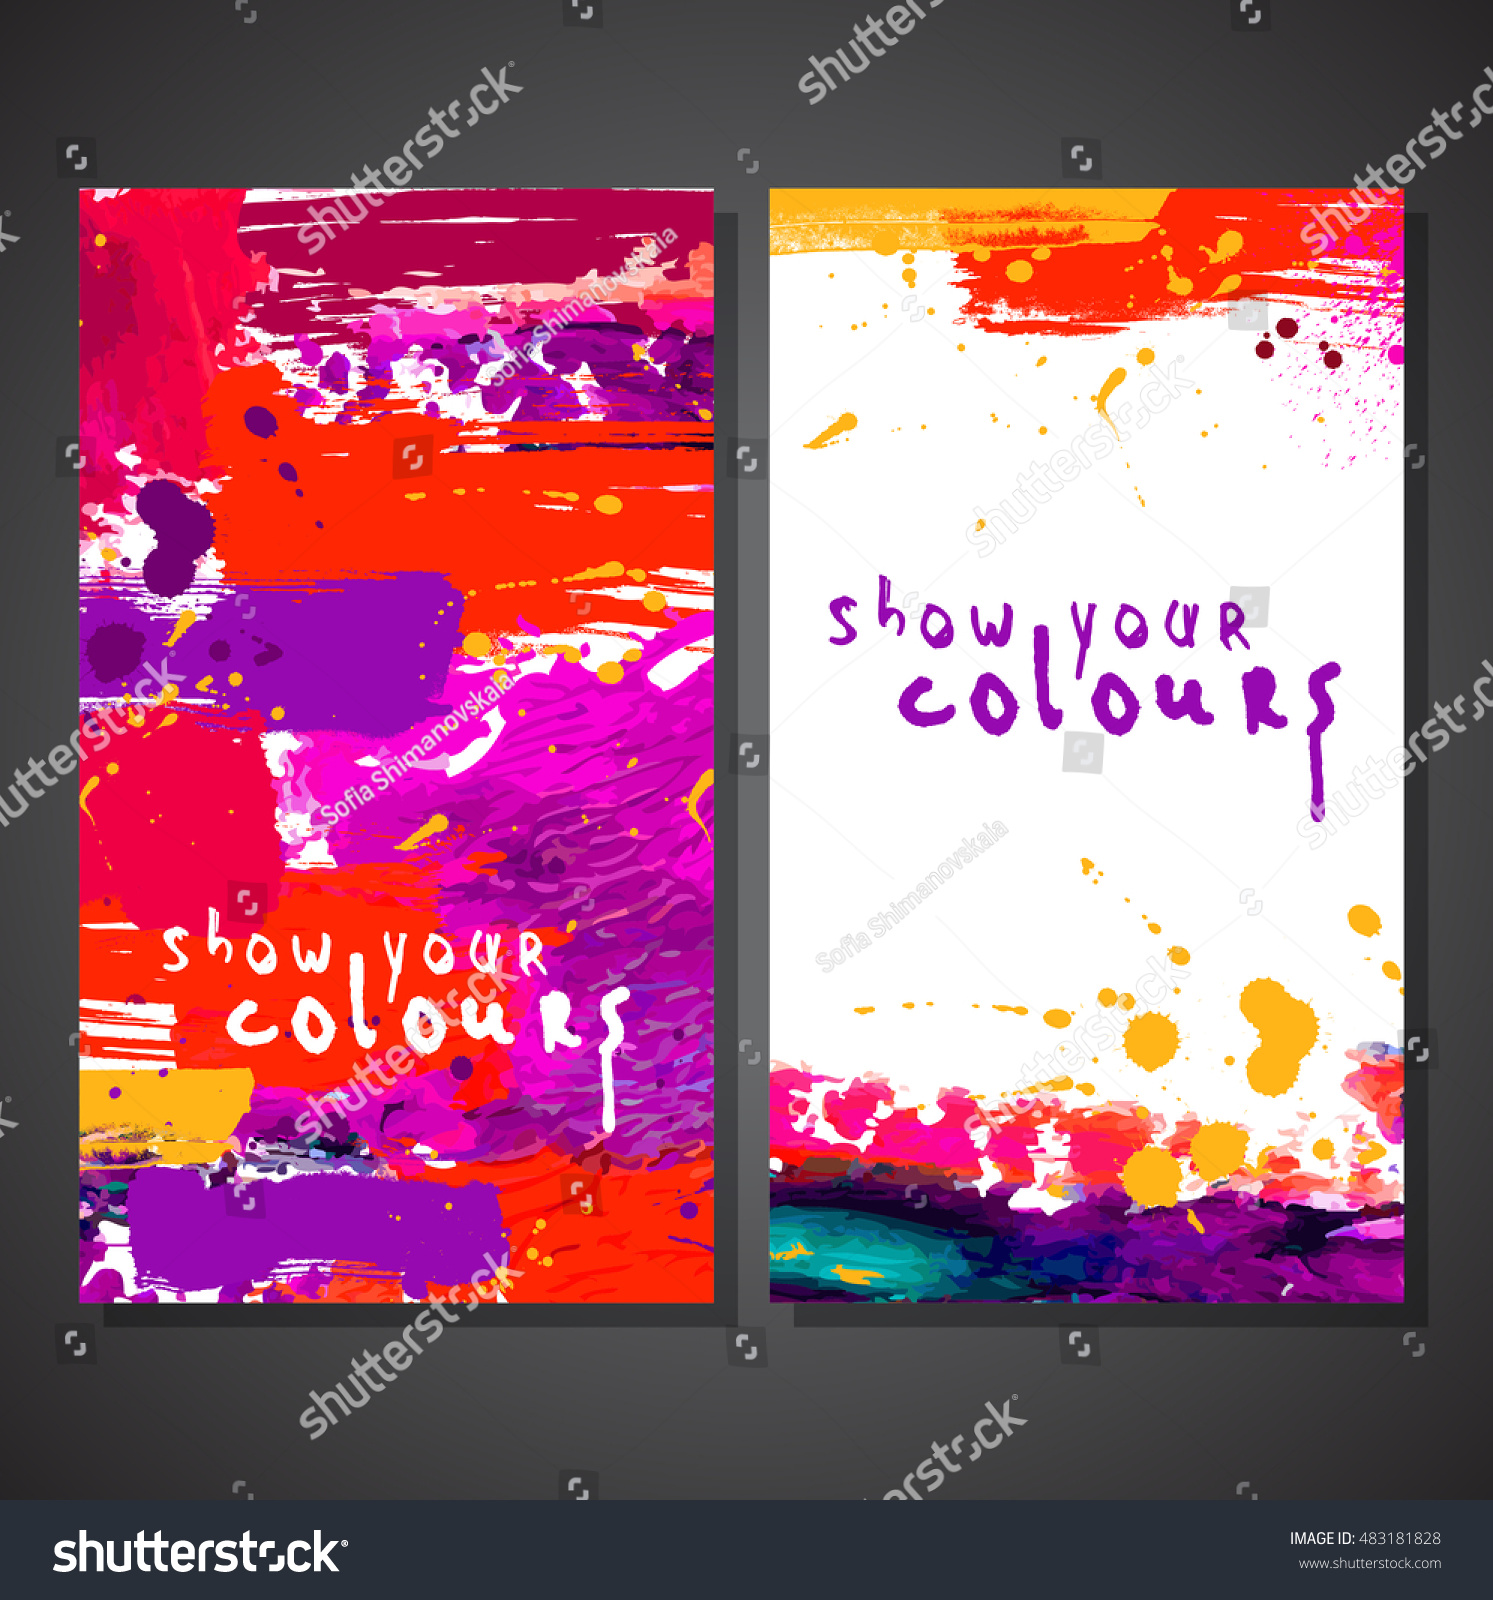 flyer template or invitation paint abstract background flyer template or invitation paint abstract background